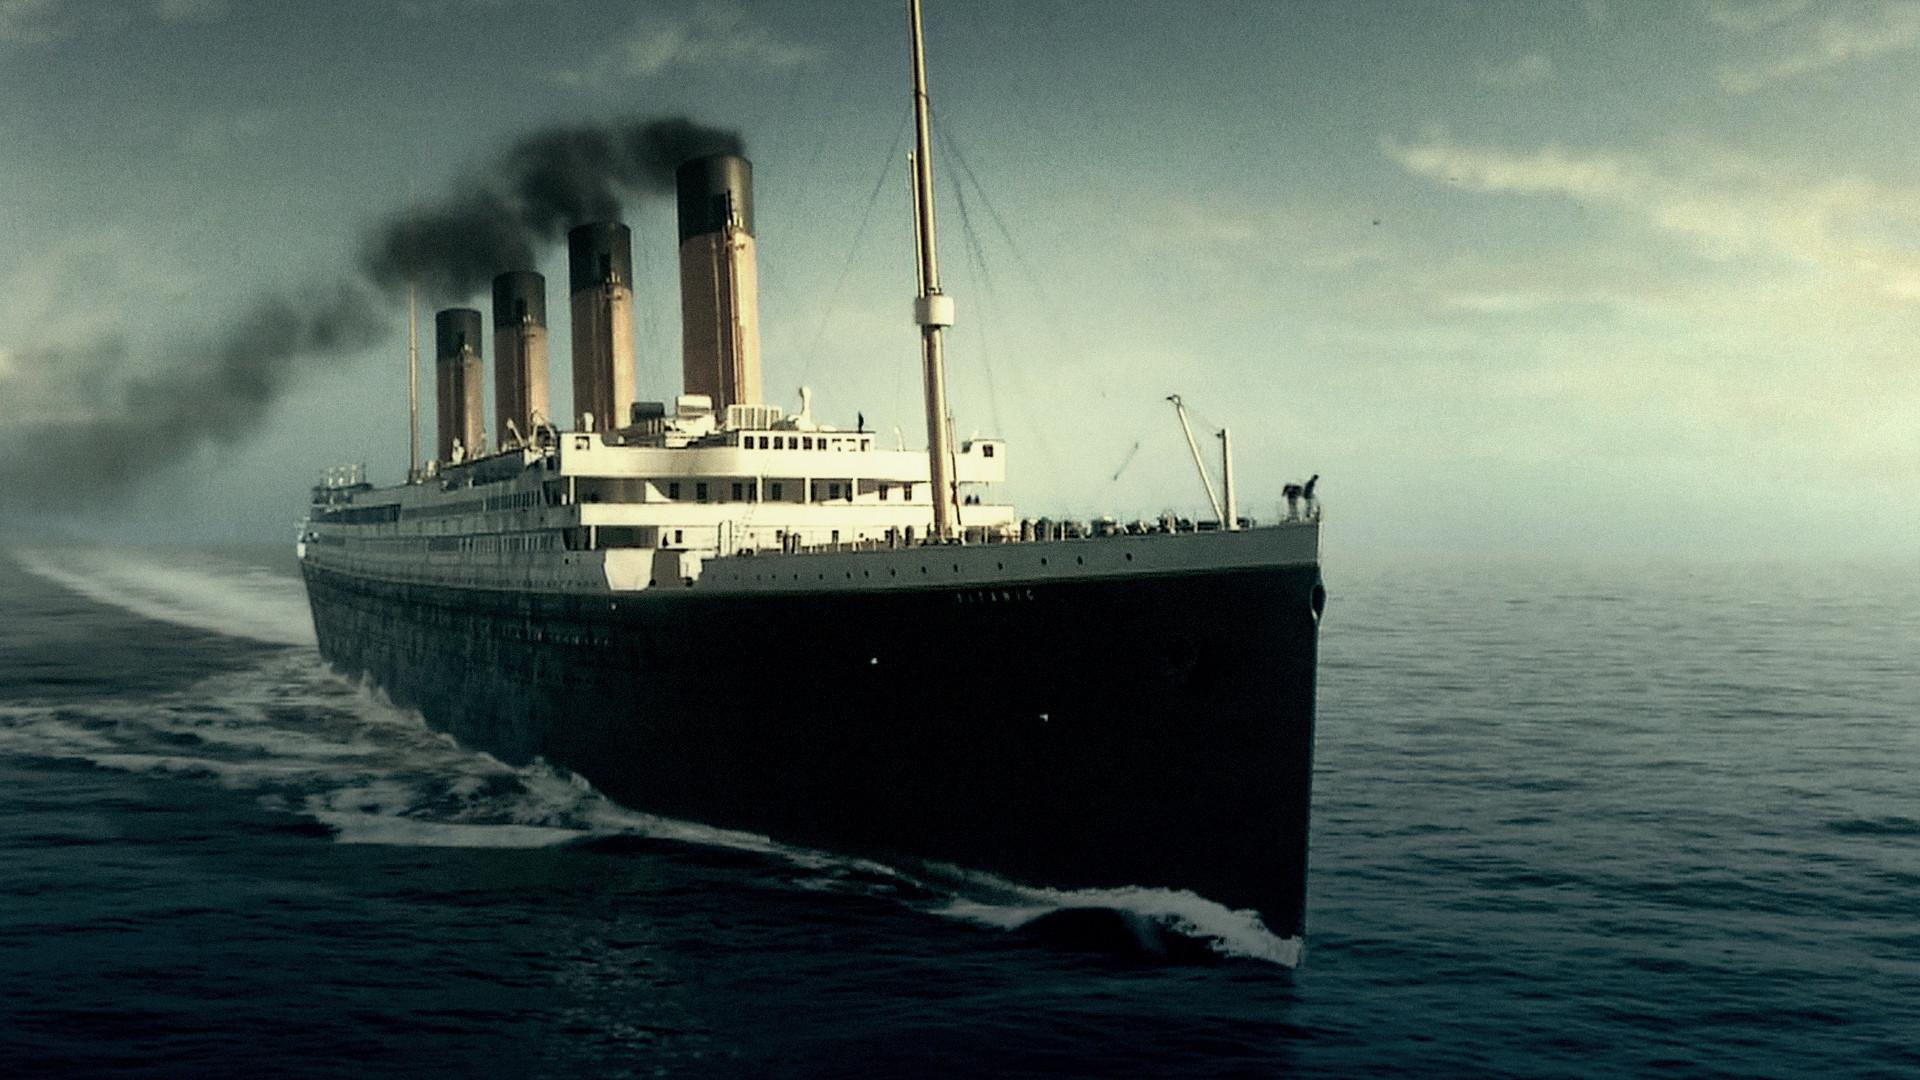 ... of the sinking of R.M.S. Titanic (15th April 1912 – 15th April 2012